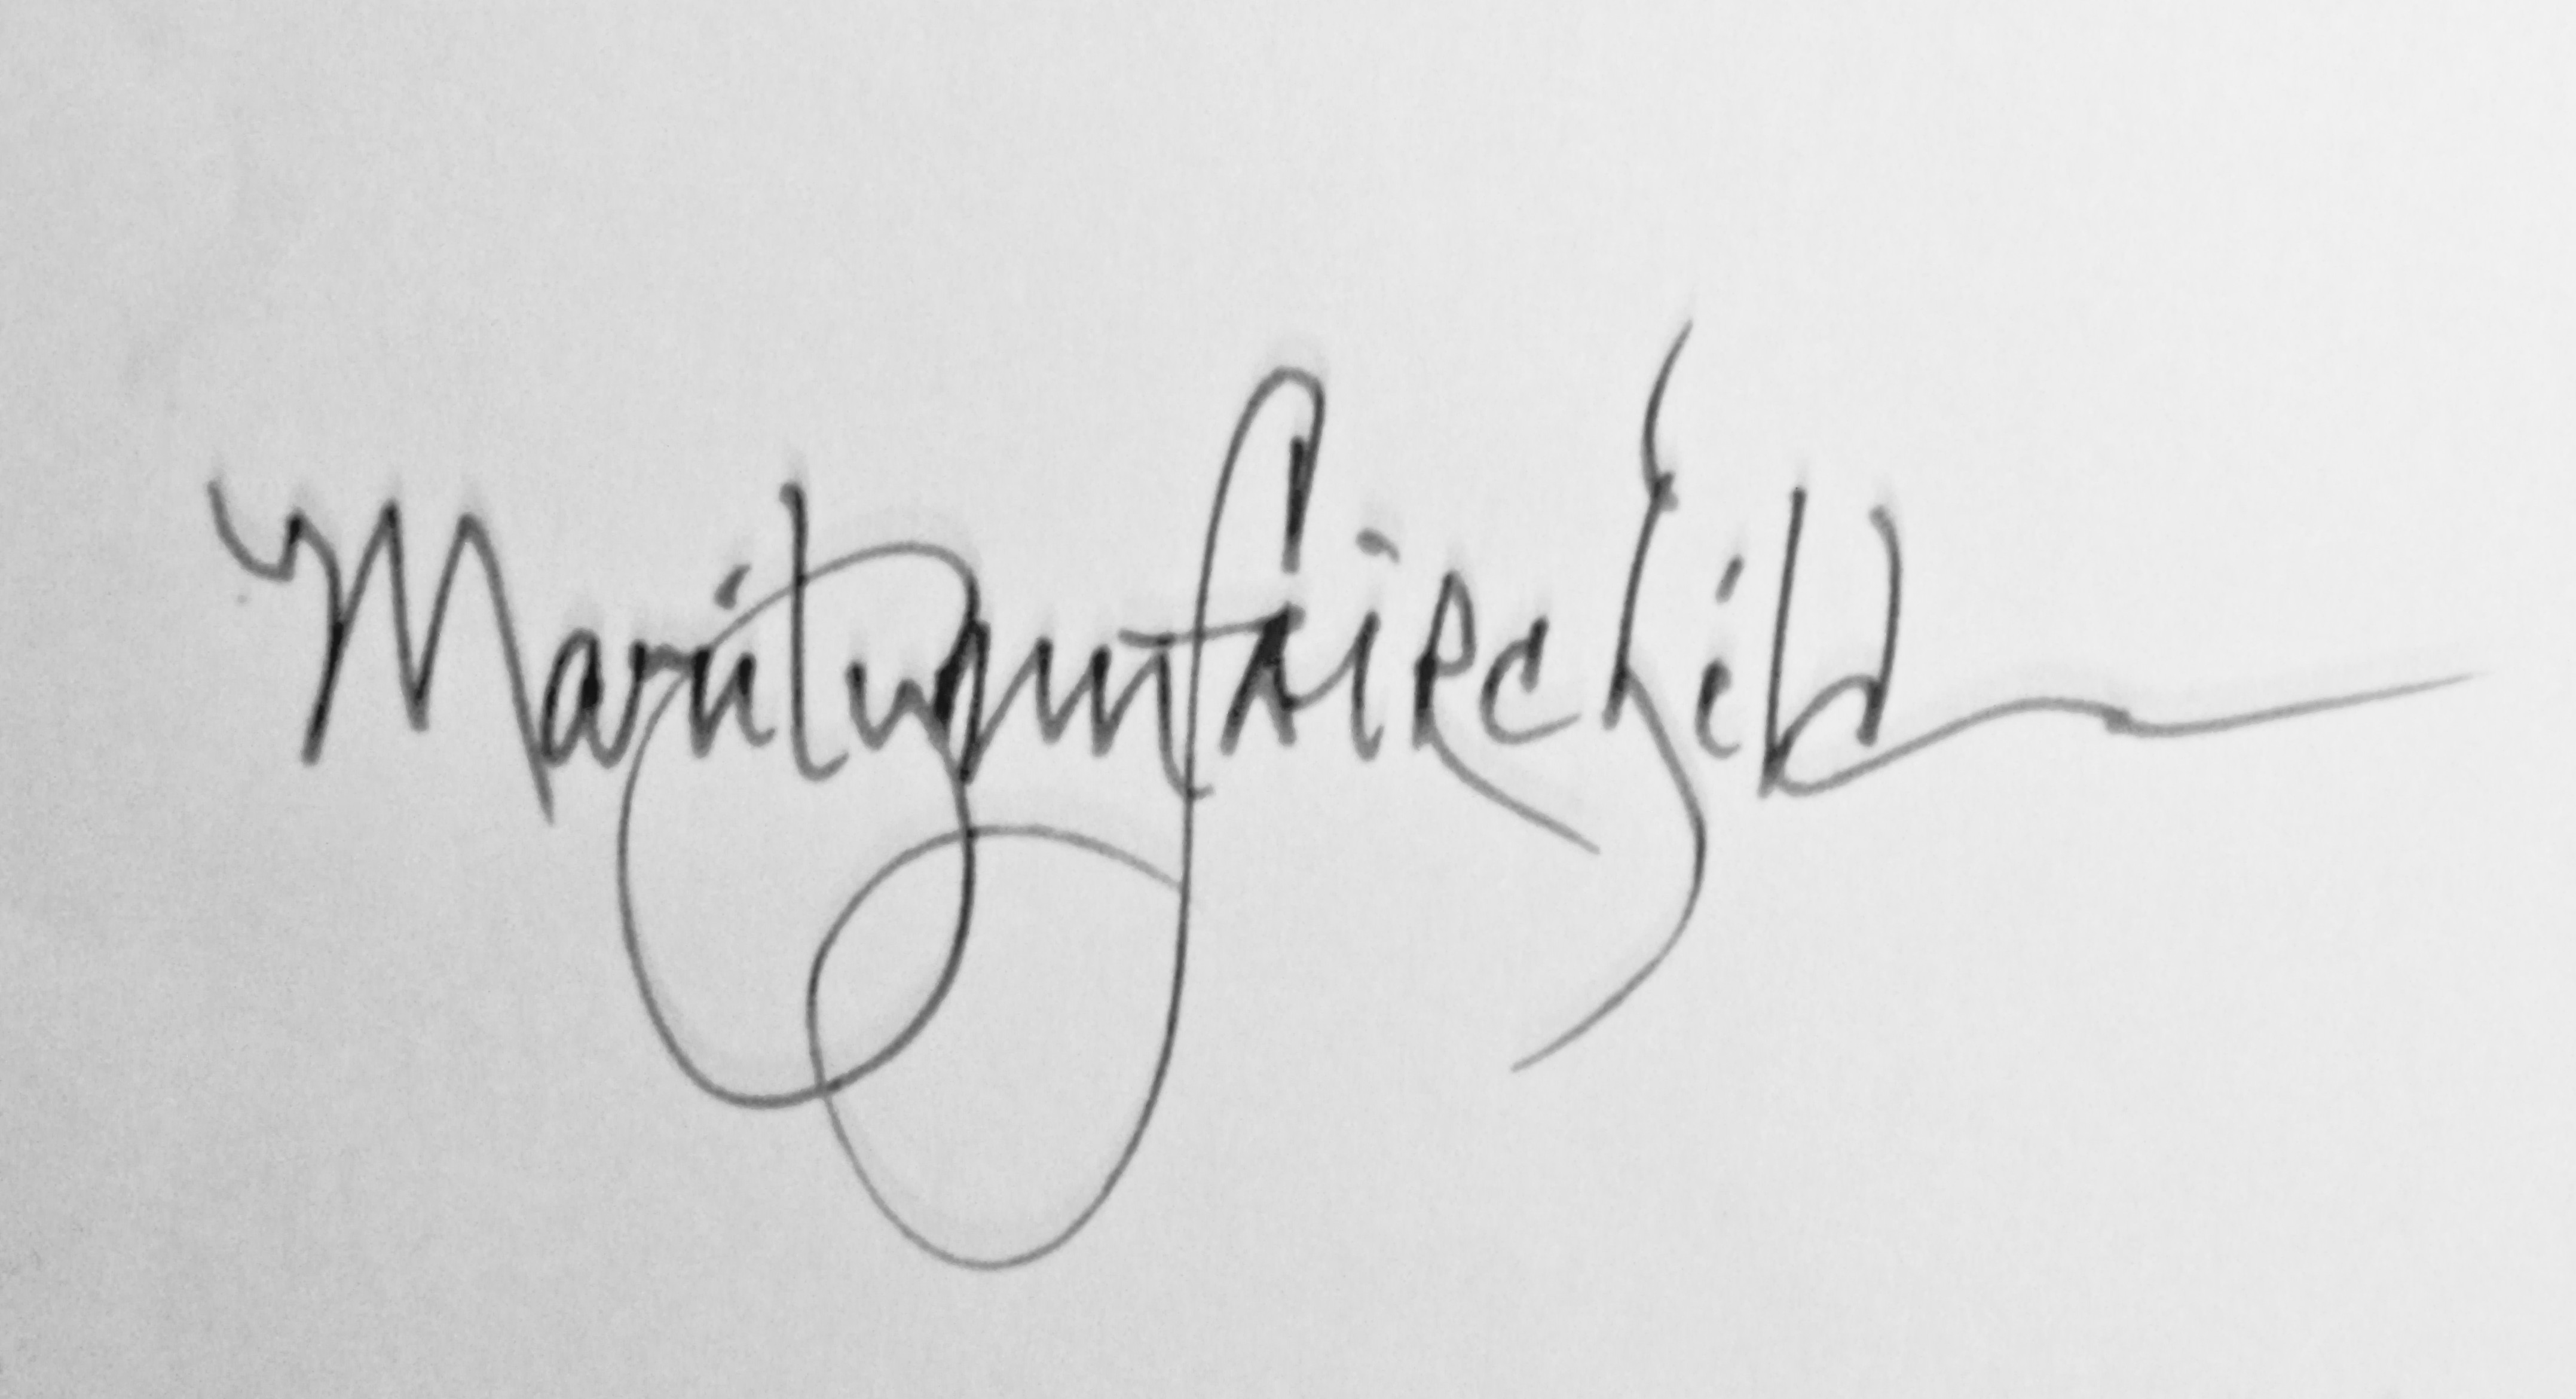 Marilynn Fairchild's Signature